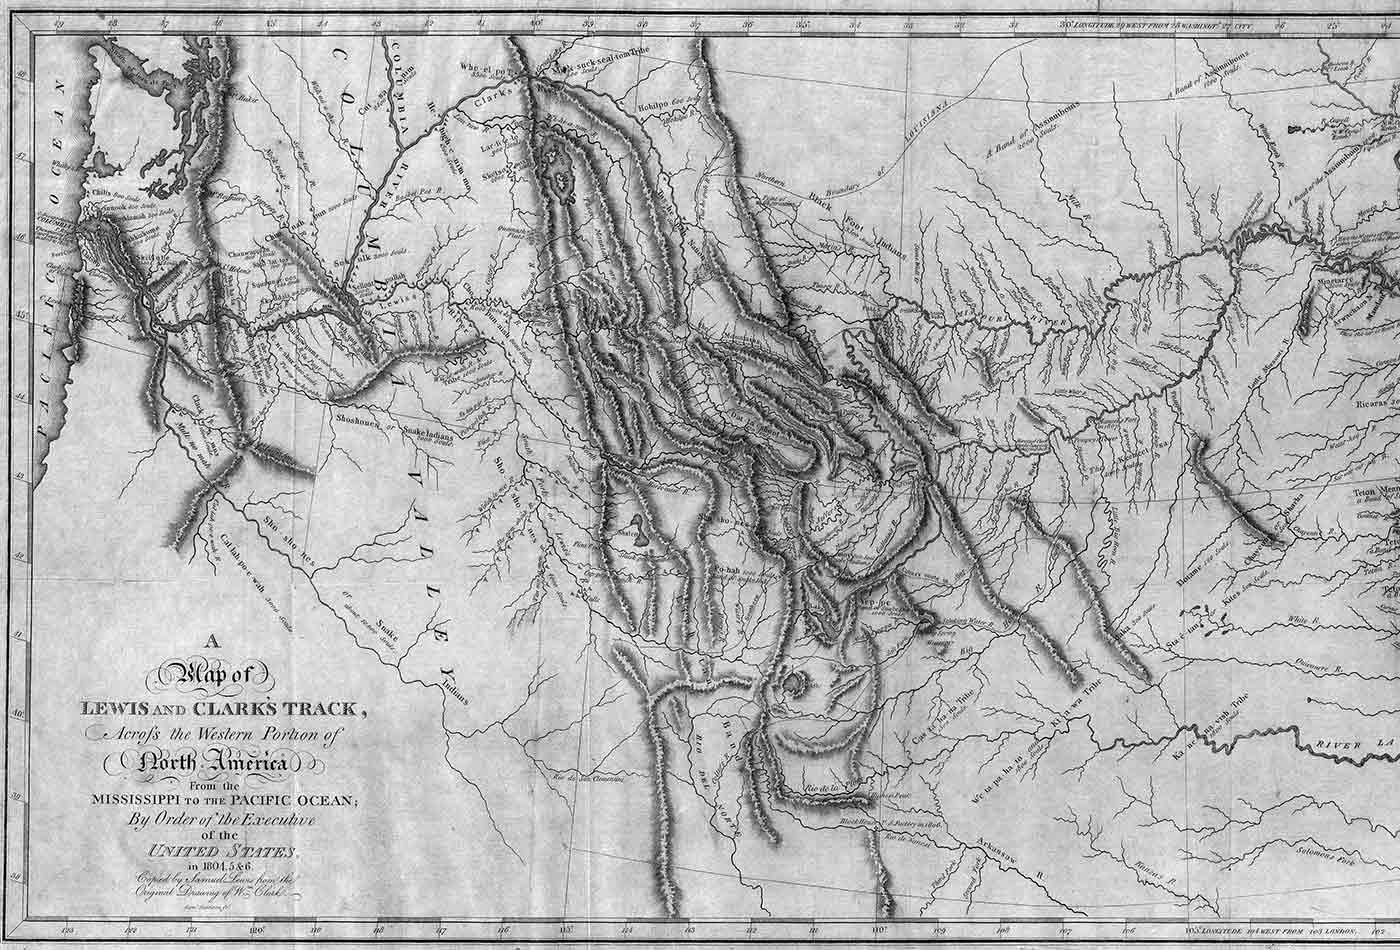 Map of Lewis and Clark's track across the western portion of North America.